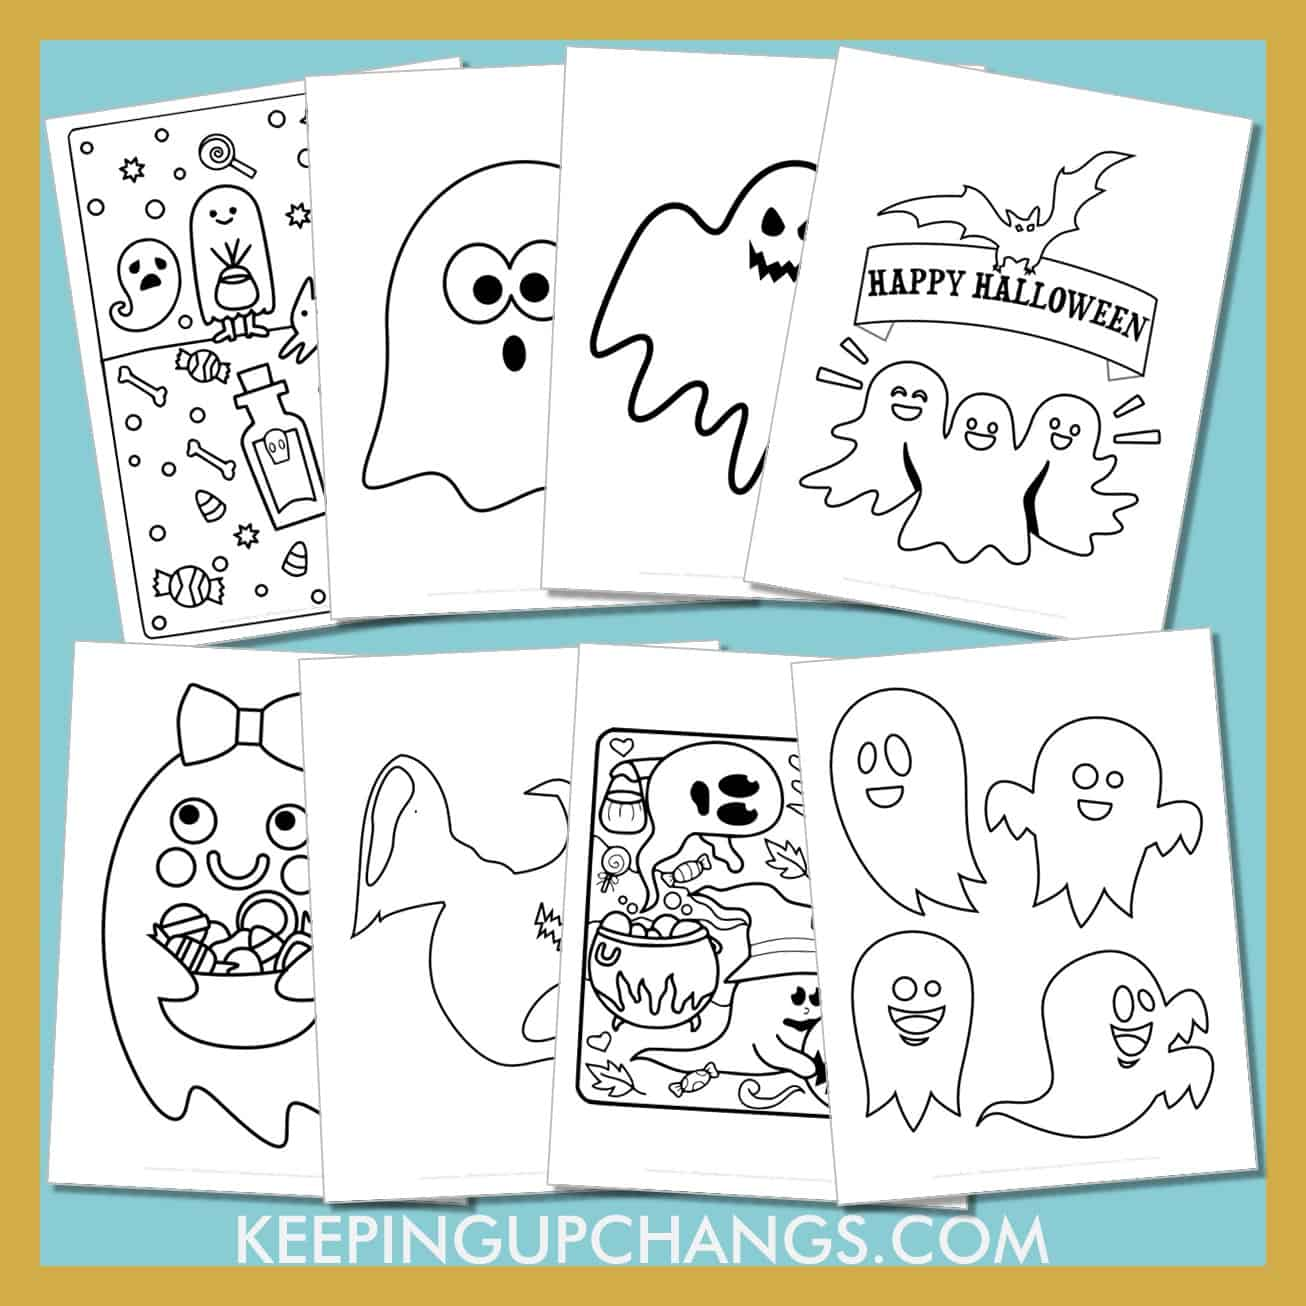 halloween ghost colouring sheets including cute cut out template for toddlers, preschool, happy halloween and more.